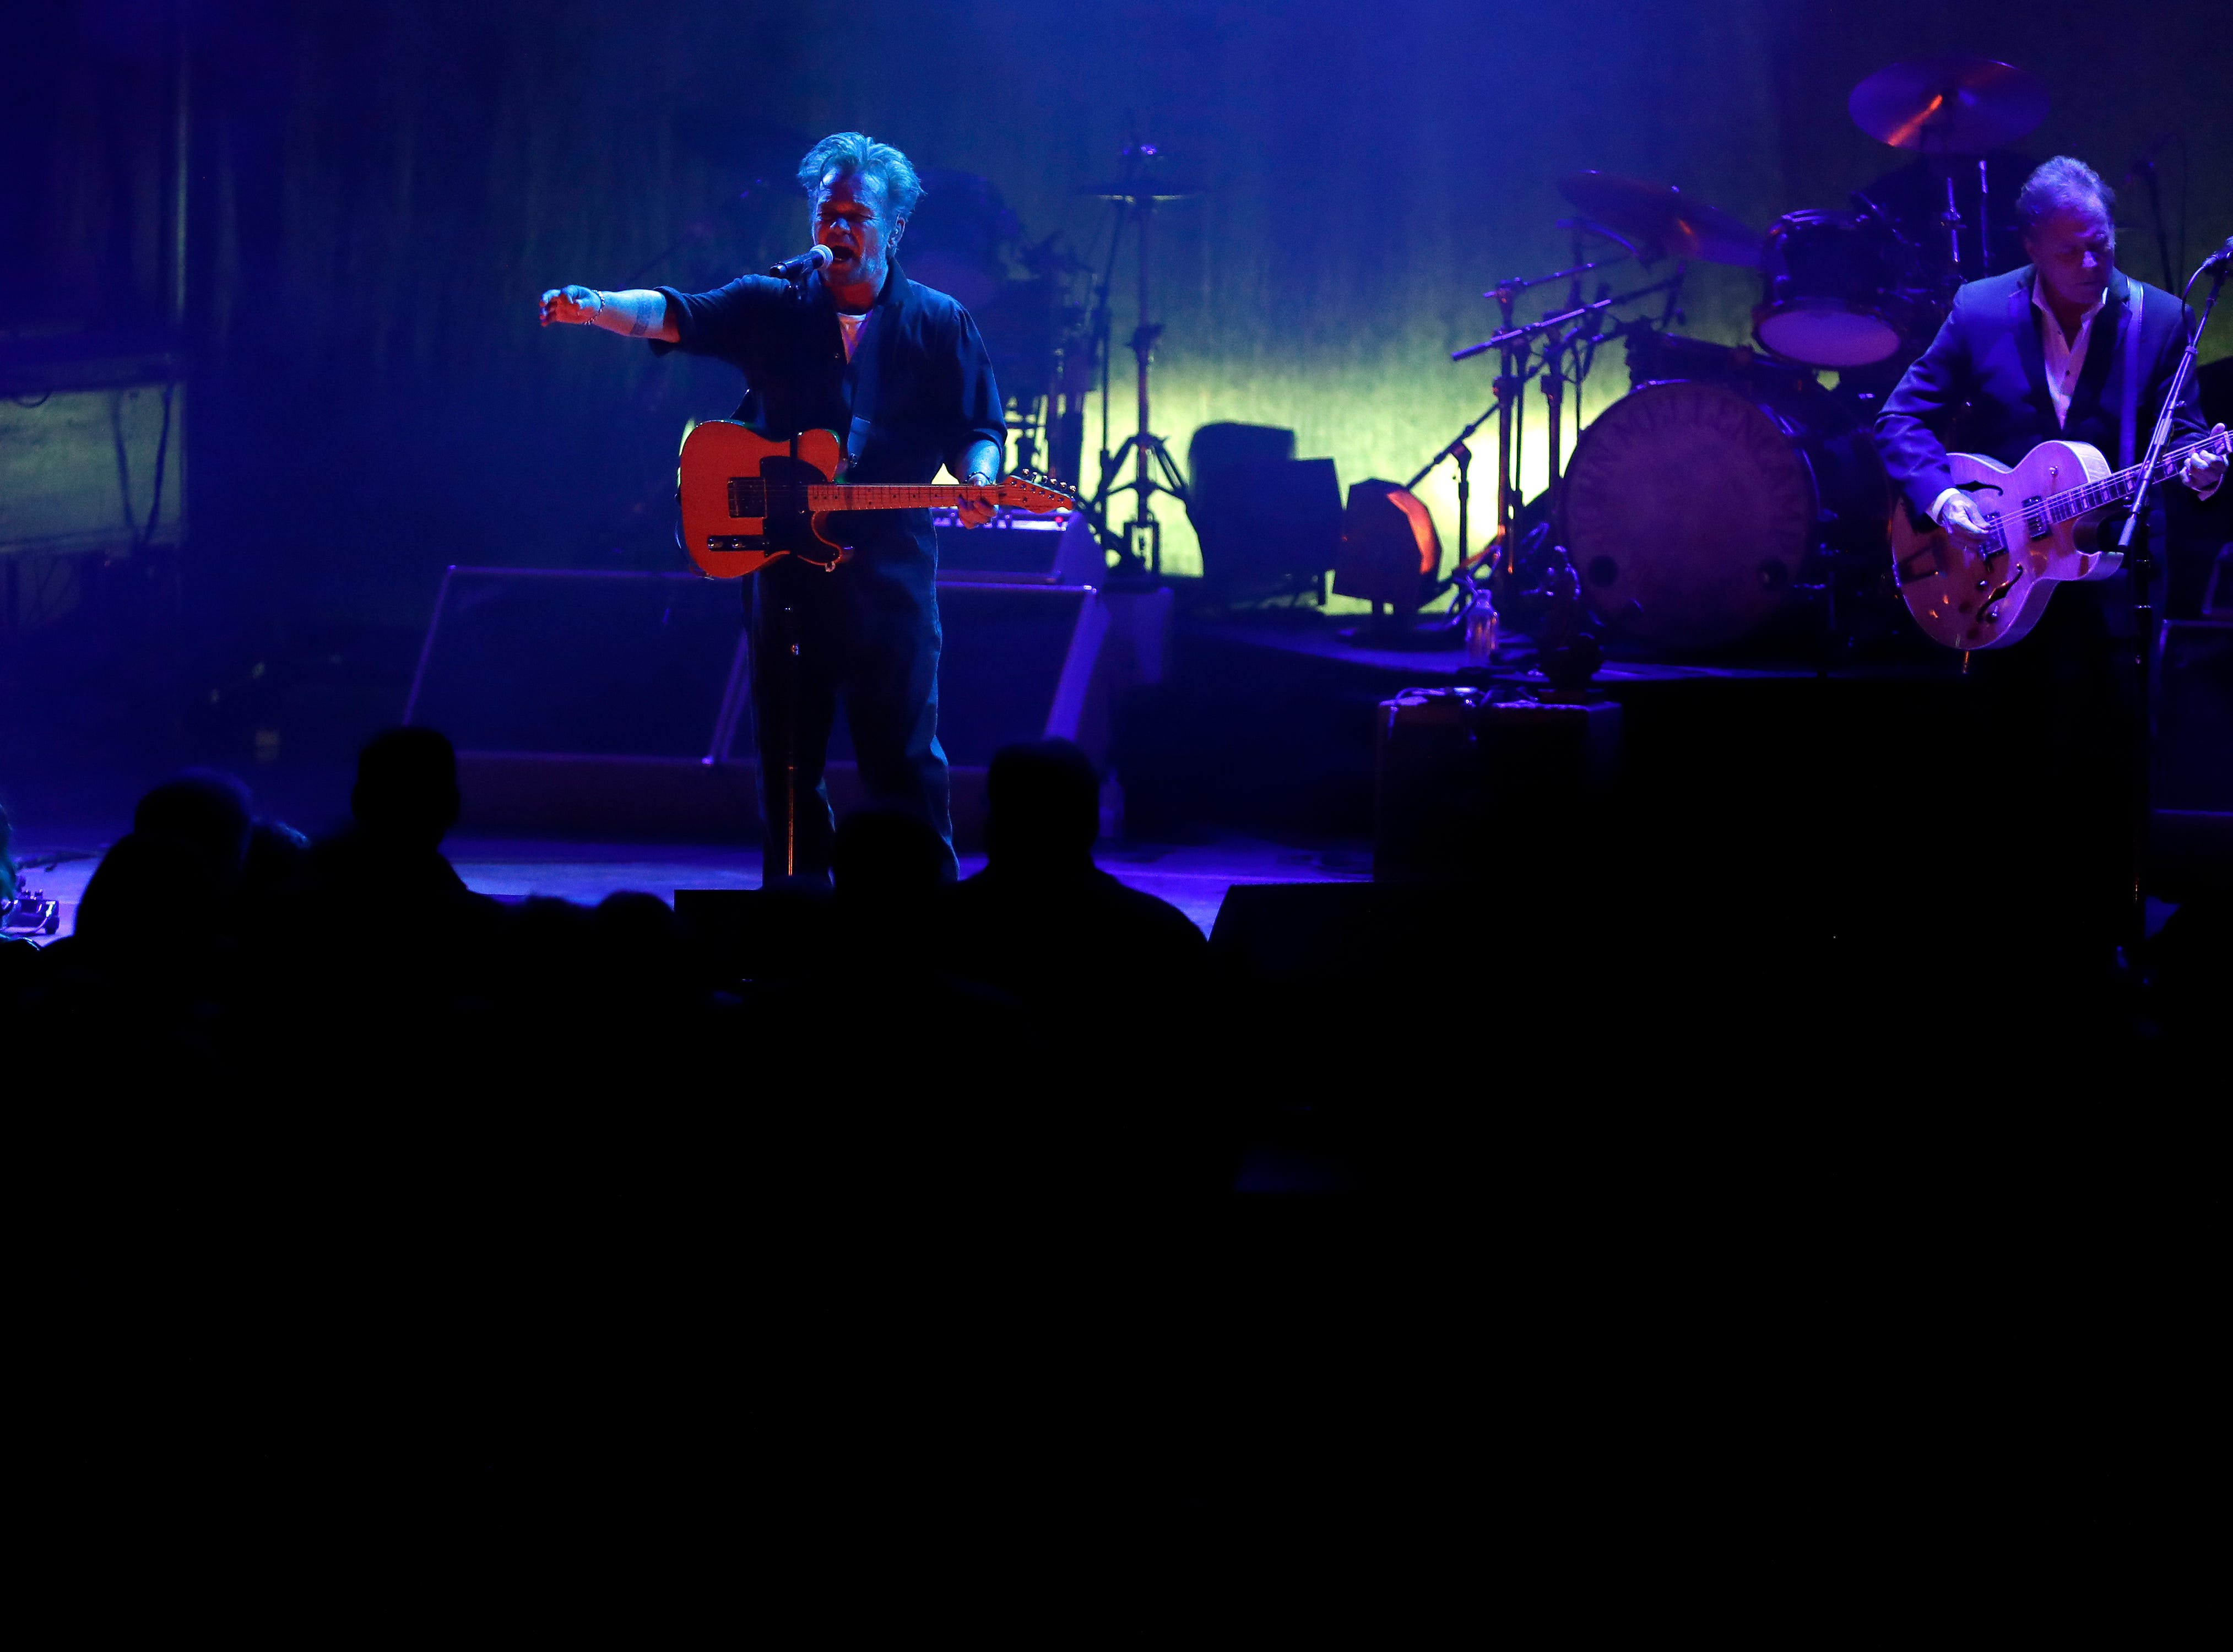 John Mellencamp performs April 13, 2019 at the Weidner Center on the University of Wisconsin-Green Bay campus.